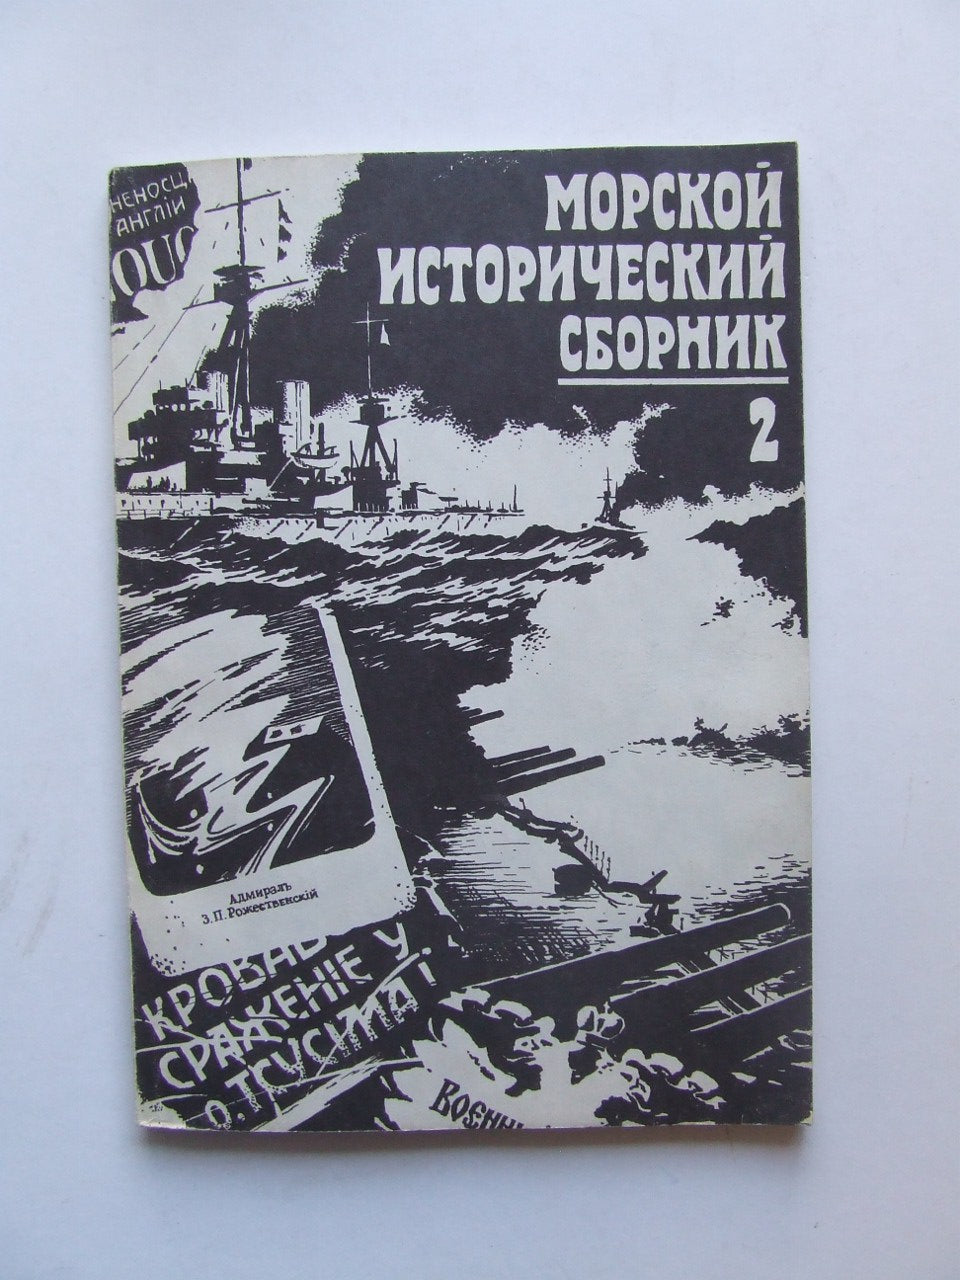 Morskoy Istoricheskiy Sbornik  -  Naval History Digest. second issue